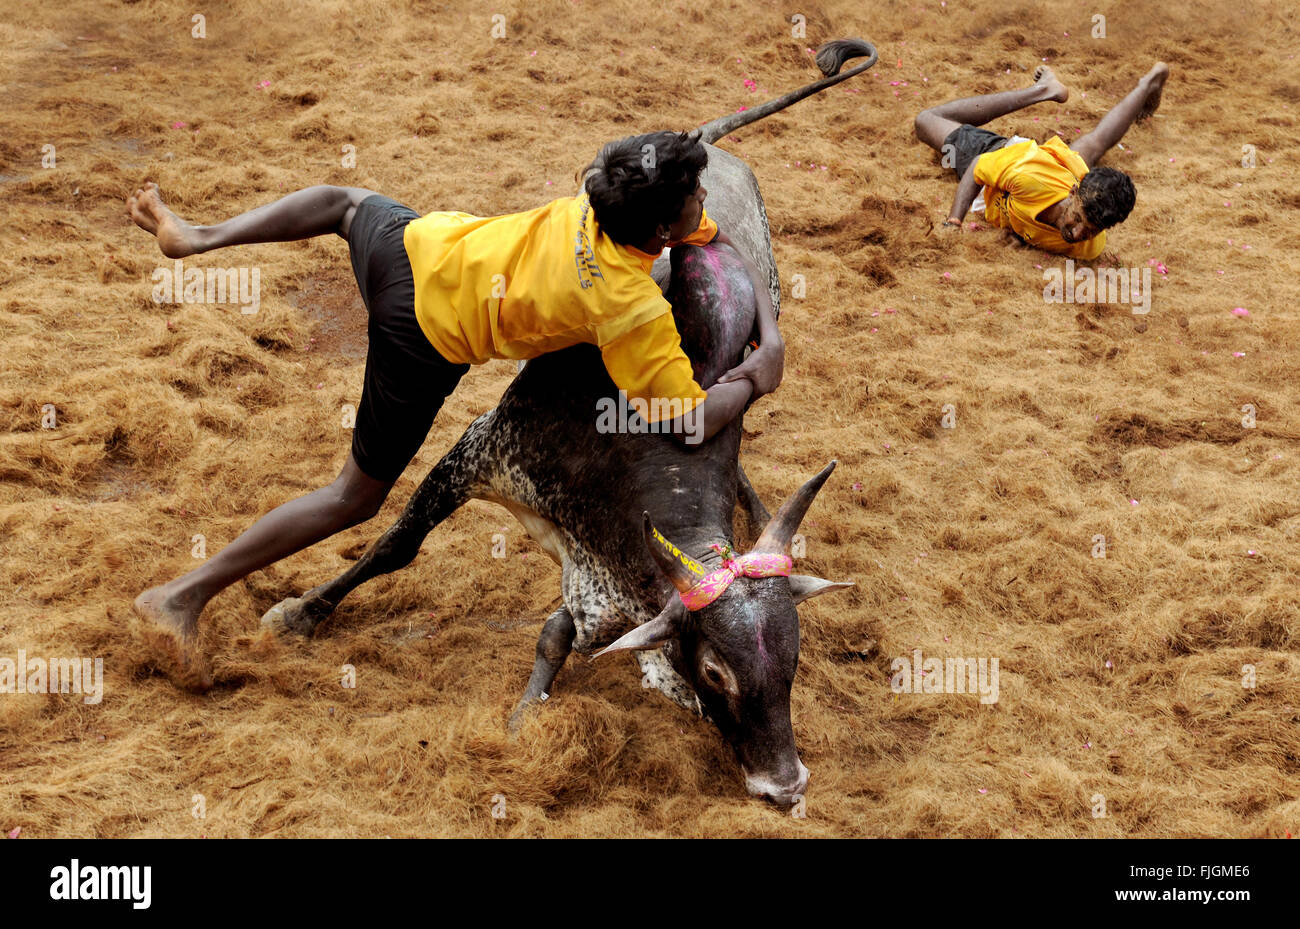 Jallikattu / Taming the bull is a 2000 year old sport in Tamilnadu,India.It happens during Pongal celebration. - Stock Image